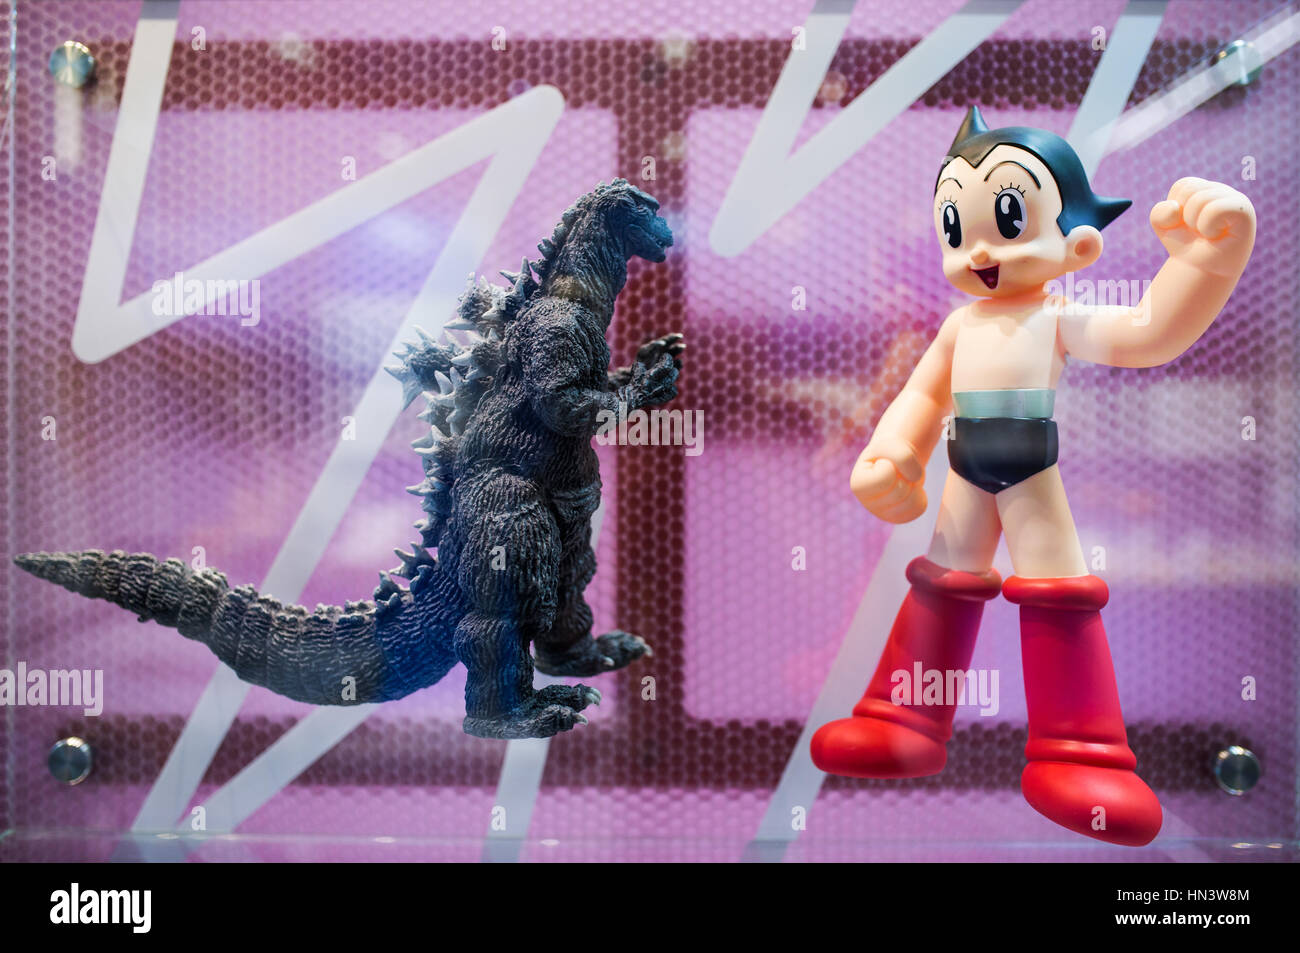 Astro Boy Stock Photos Images Alamy The Movie Action Figure Original Firgures Of Godzilla And